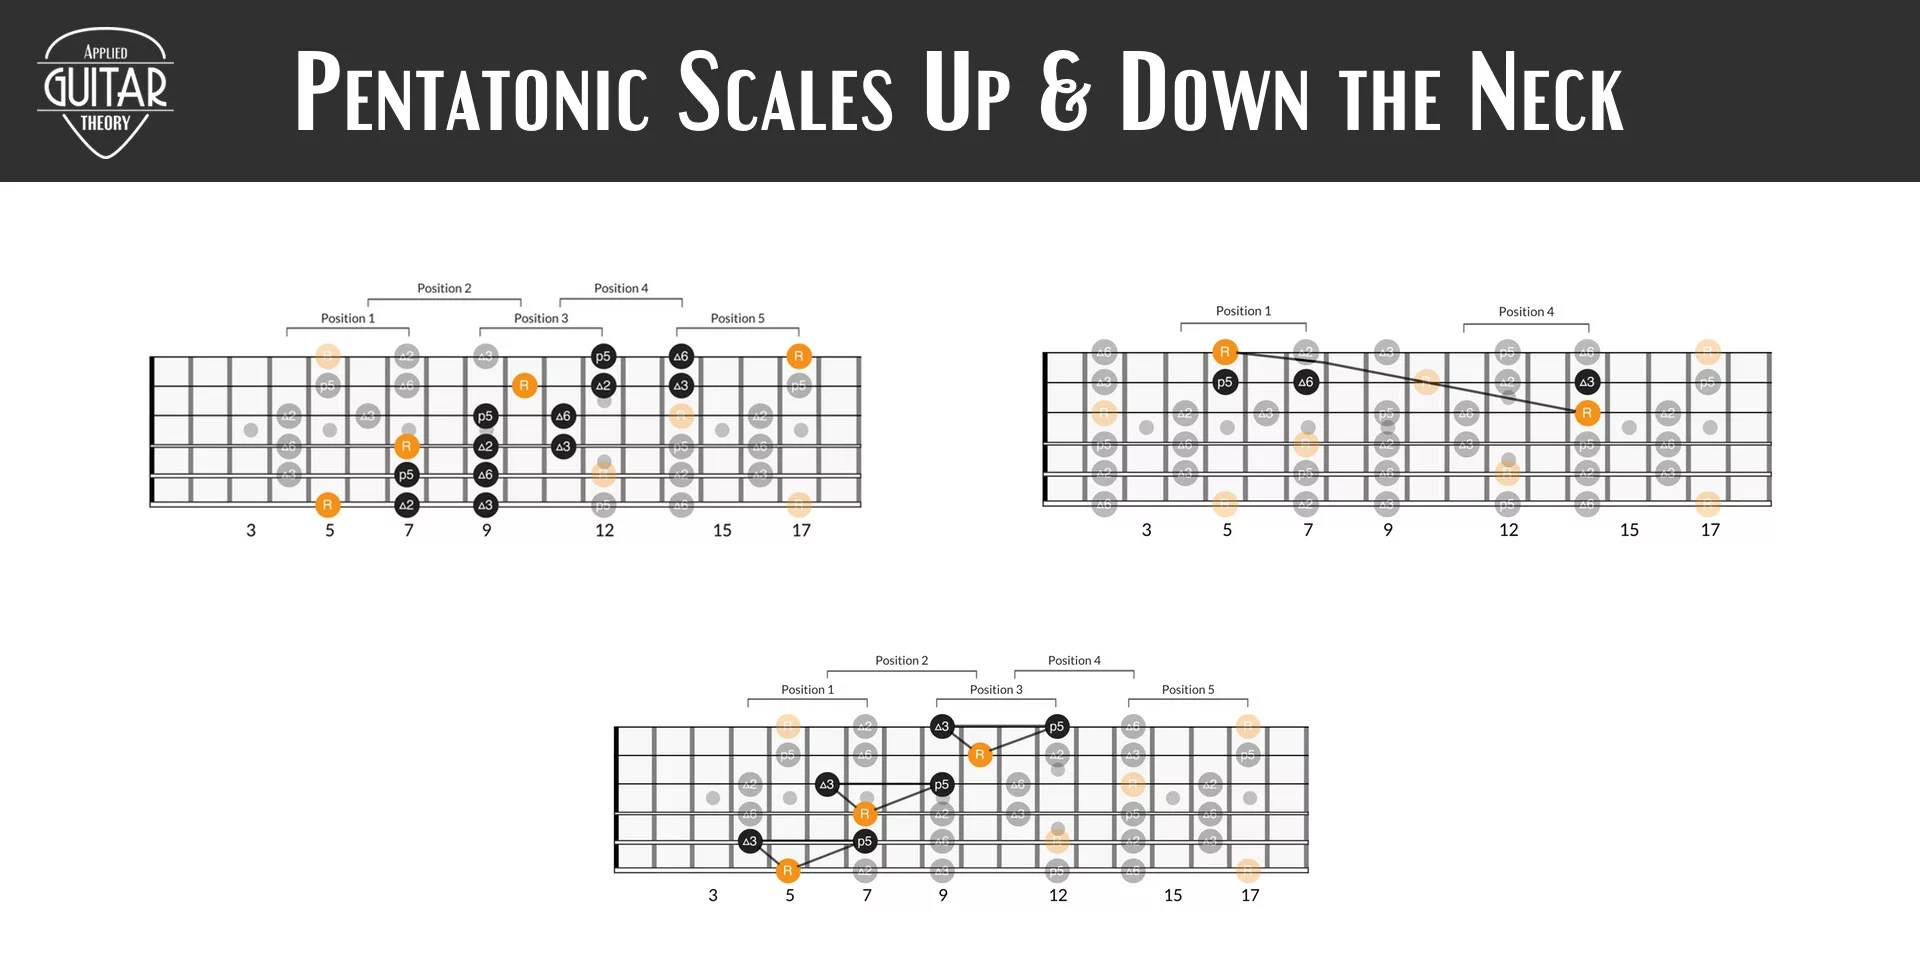 hight resolution of 3 easy ways to play pentatonic scales up and down the neck applied guitar theory